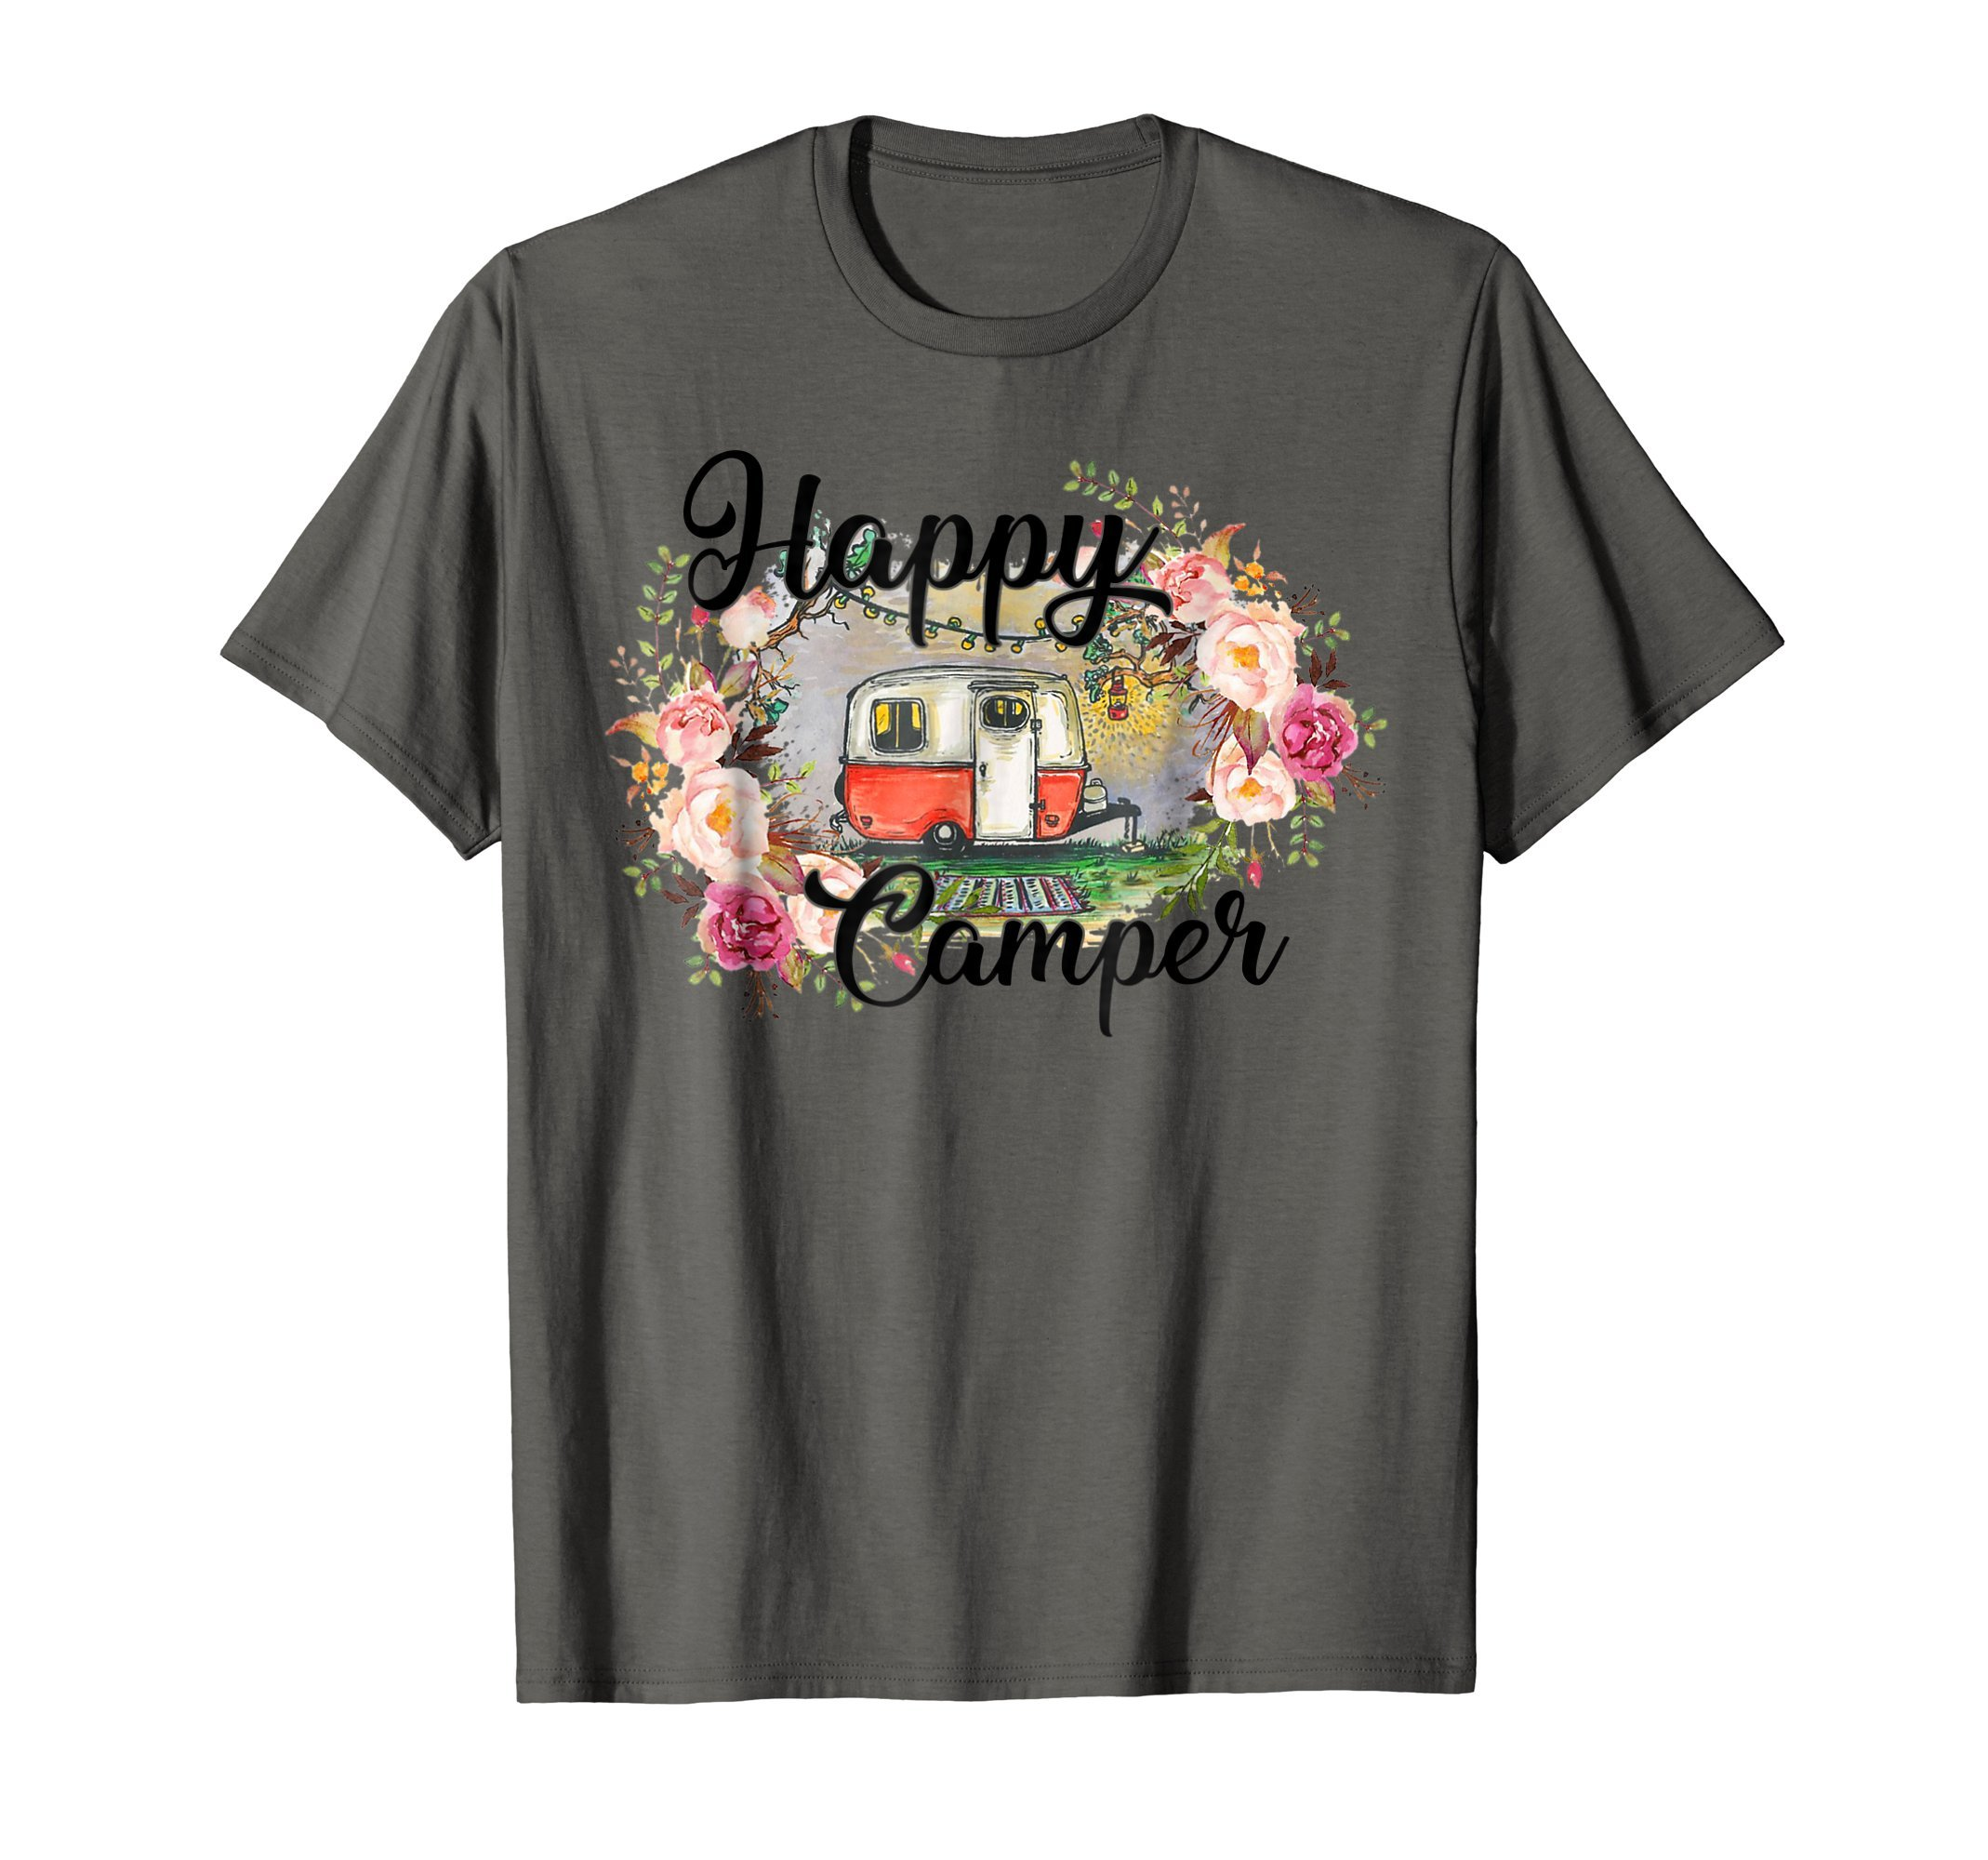 Happy camper vintage shirt - funny camping shirt gifts by loves camping ever shirts for men women (Image #1)